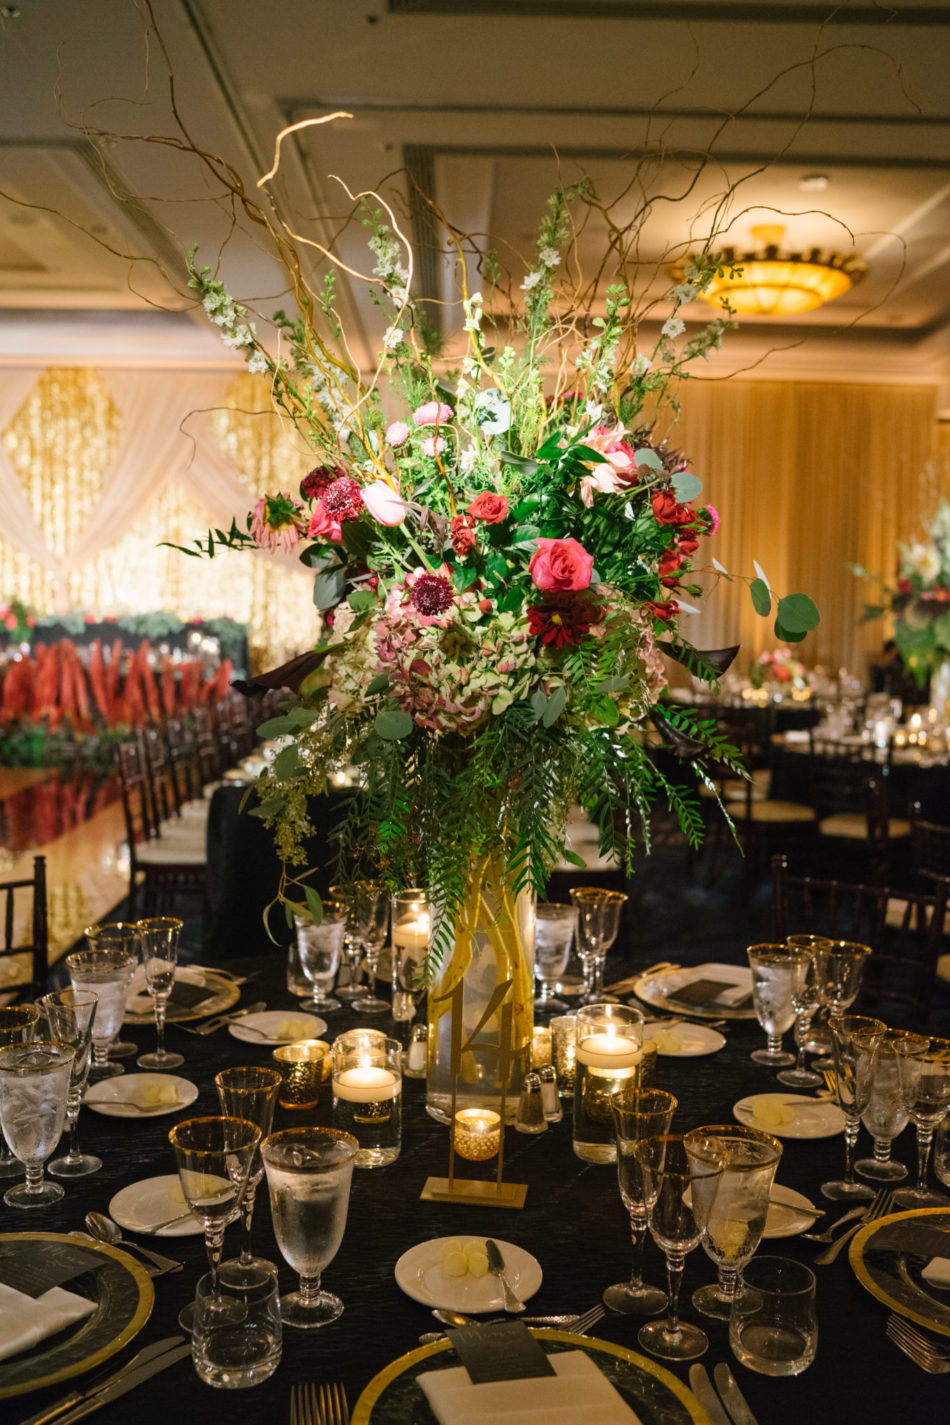 floral design, florist, wedding florist, wedding flowers, orange county weddings, orange county wedding florist, orange county florist, orange county floral design, flowers by cina, red centerpiece, red floral decor, red reception